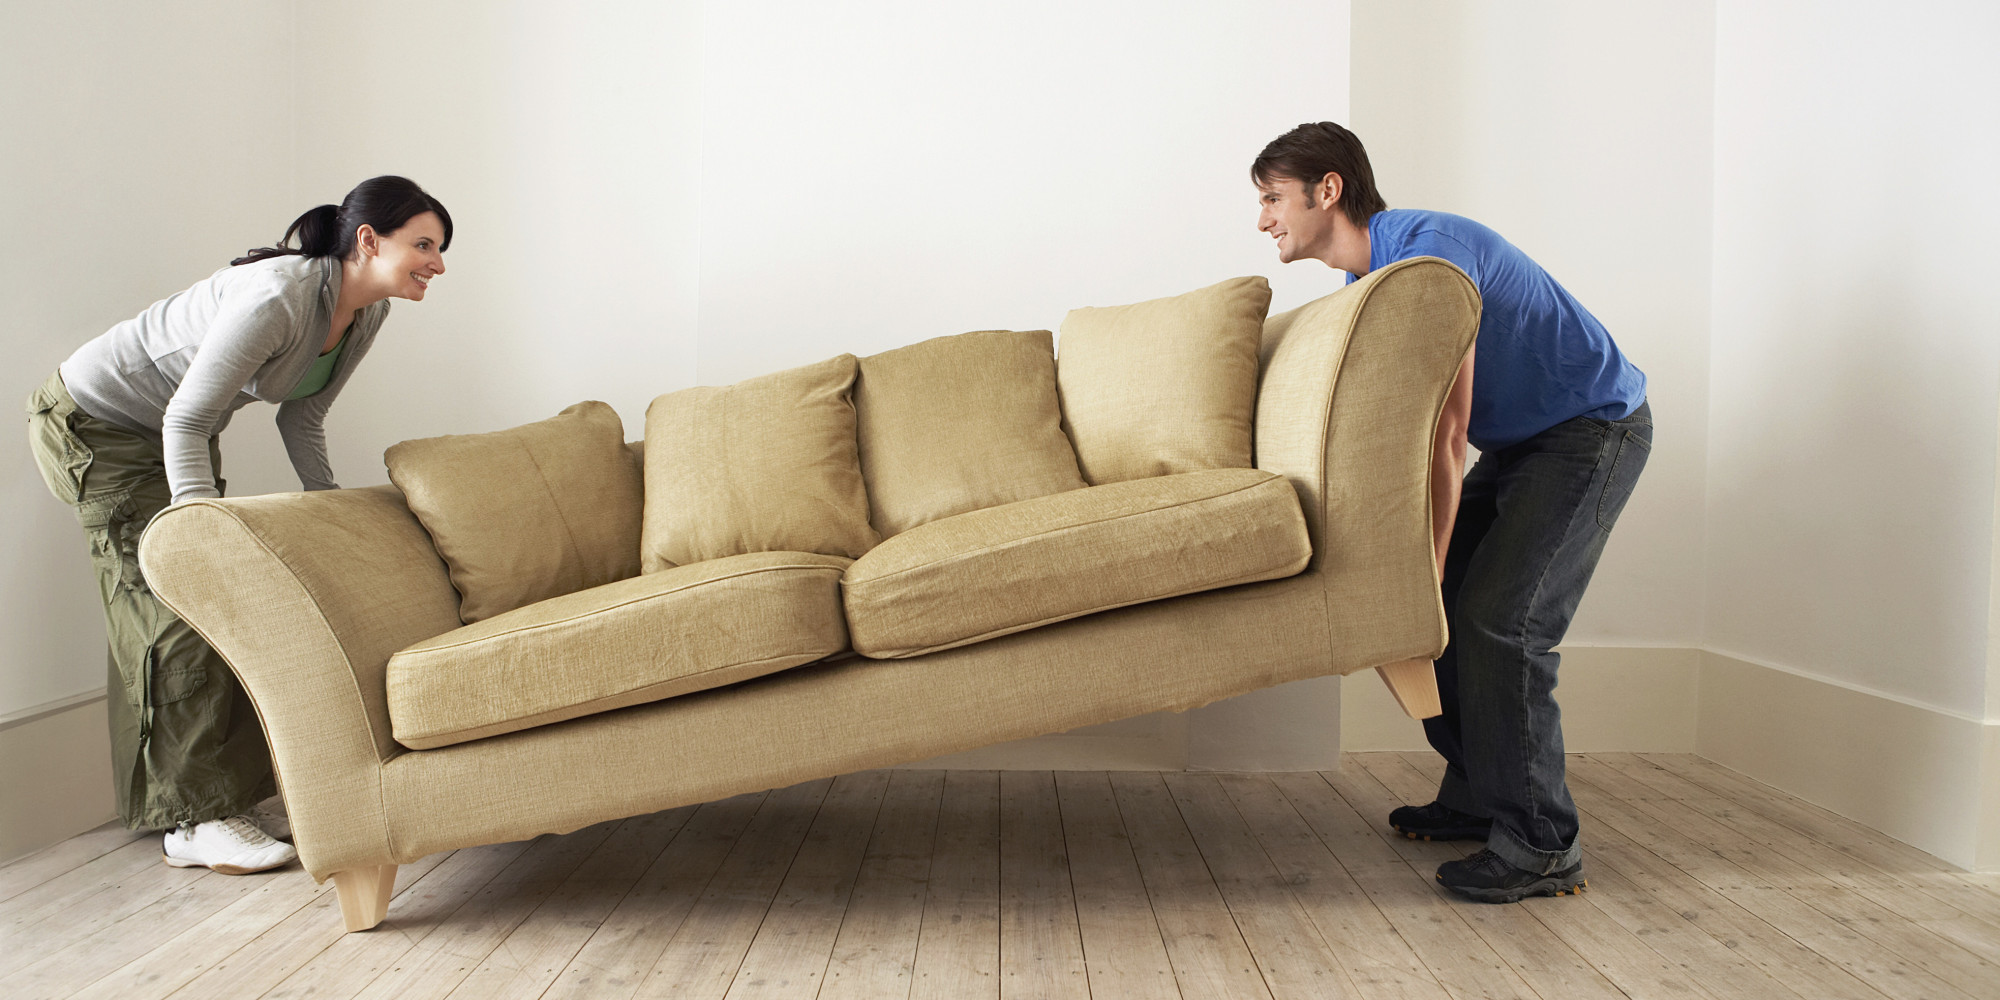 Couple Placing Sofa In Living Room Of New Home